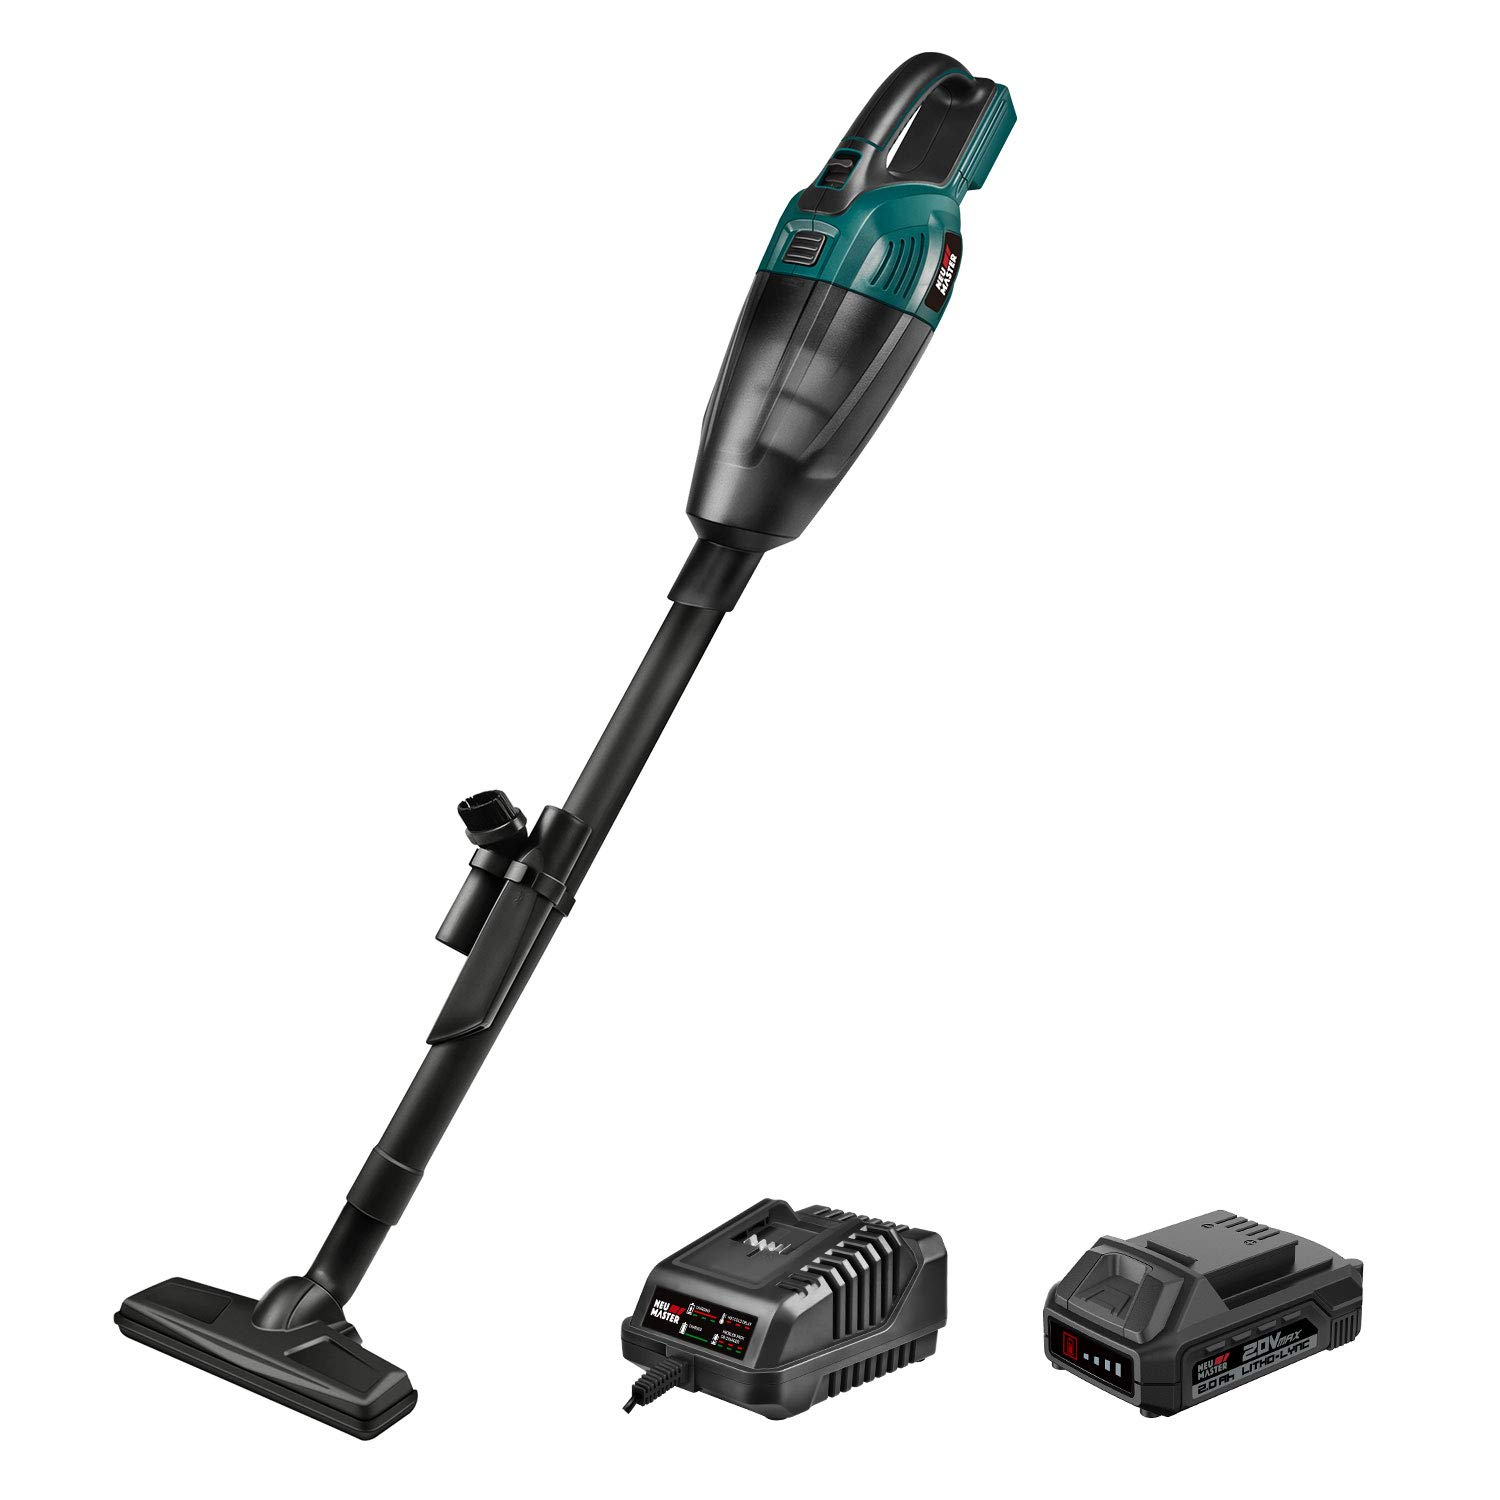 Cordless Vacuum, NEU MASTER Stick Vacuum Cleaner Kit, Powerful Lightweight Handheld Vacuum with Rechargeable Lithium Ion Battery